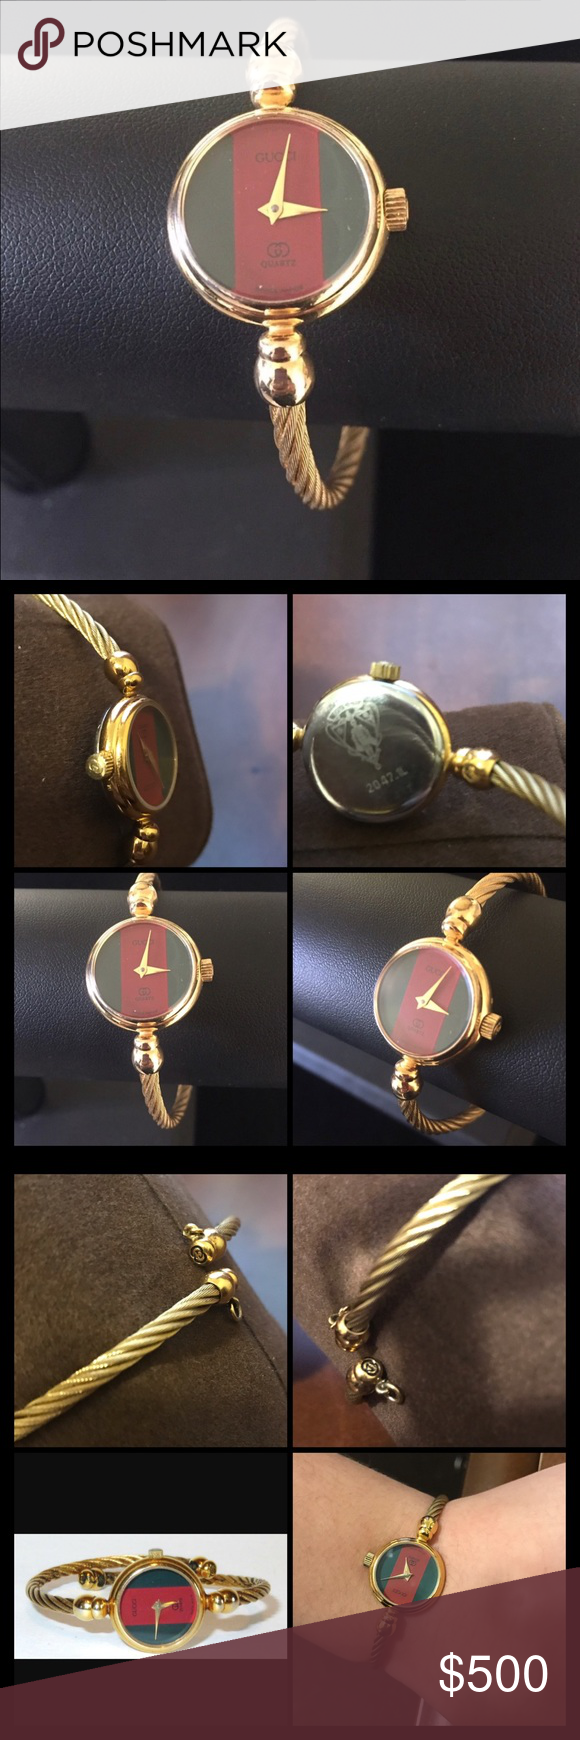 7a37359c688 Vintage Gucci 2047-L 18k Bangle Rope Cable Watch!! Selling this gorgeous 100